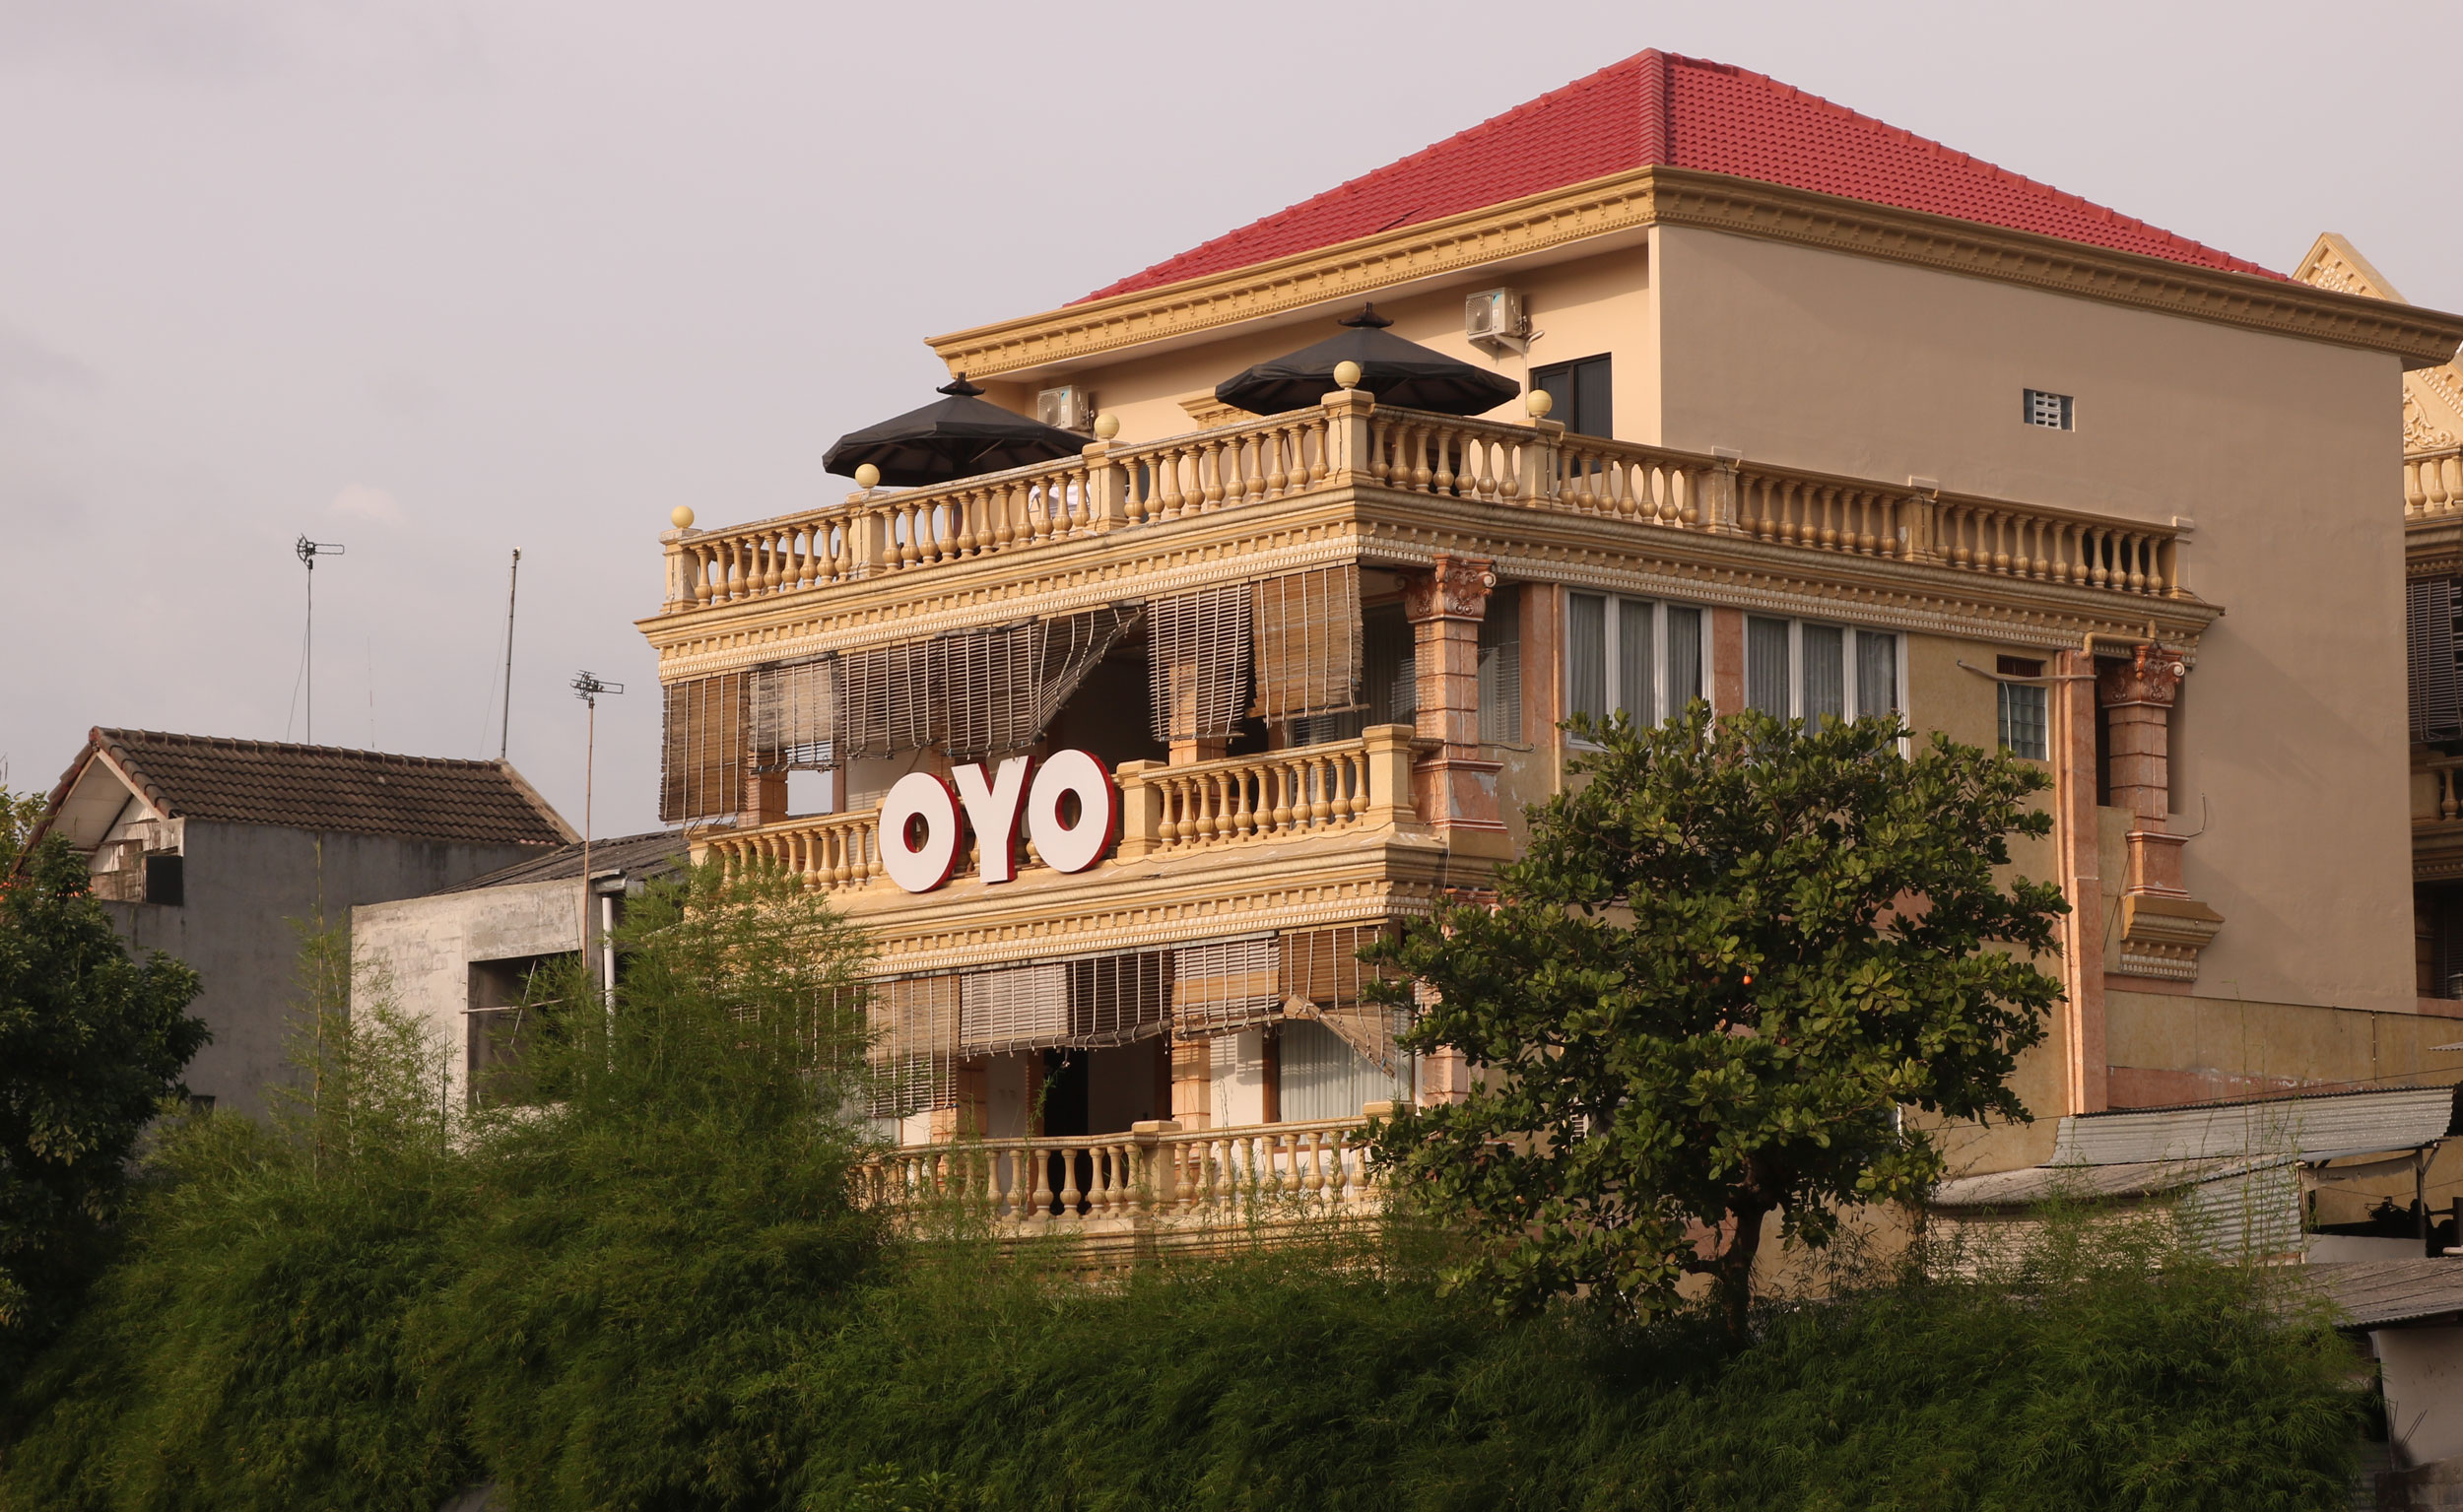 Oyo's consolidated revenue for 2018-19 stood at $951 million (over Rs 6,785 crore) against $211 million (over Rs 1,500 crore) in the year-ago fiscal.